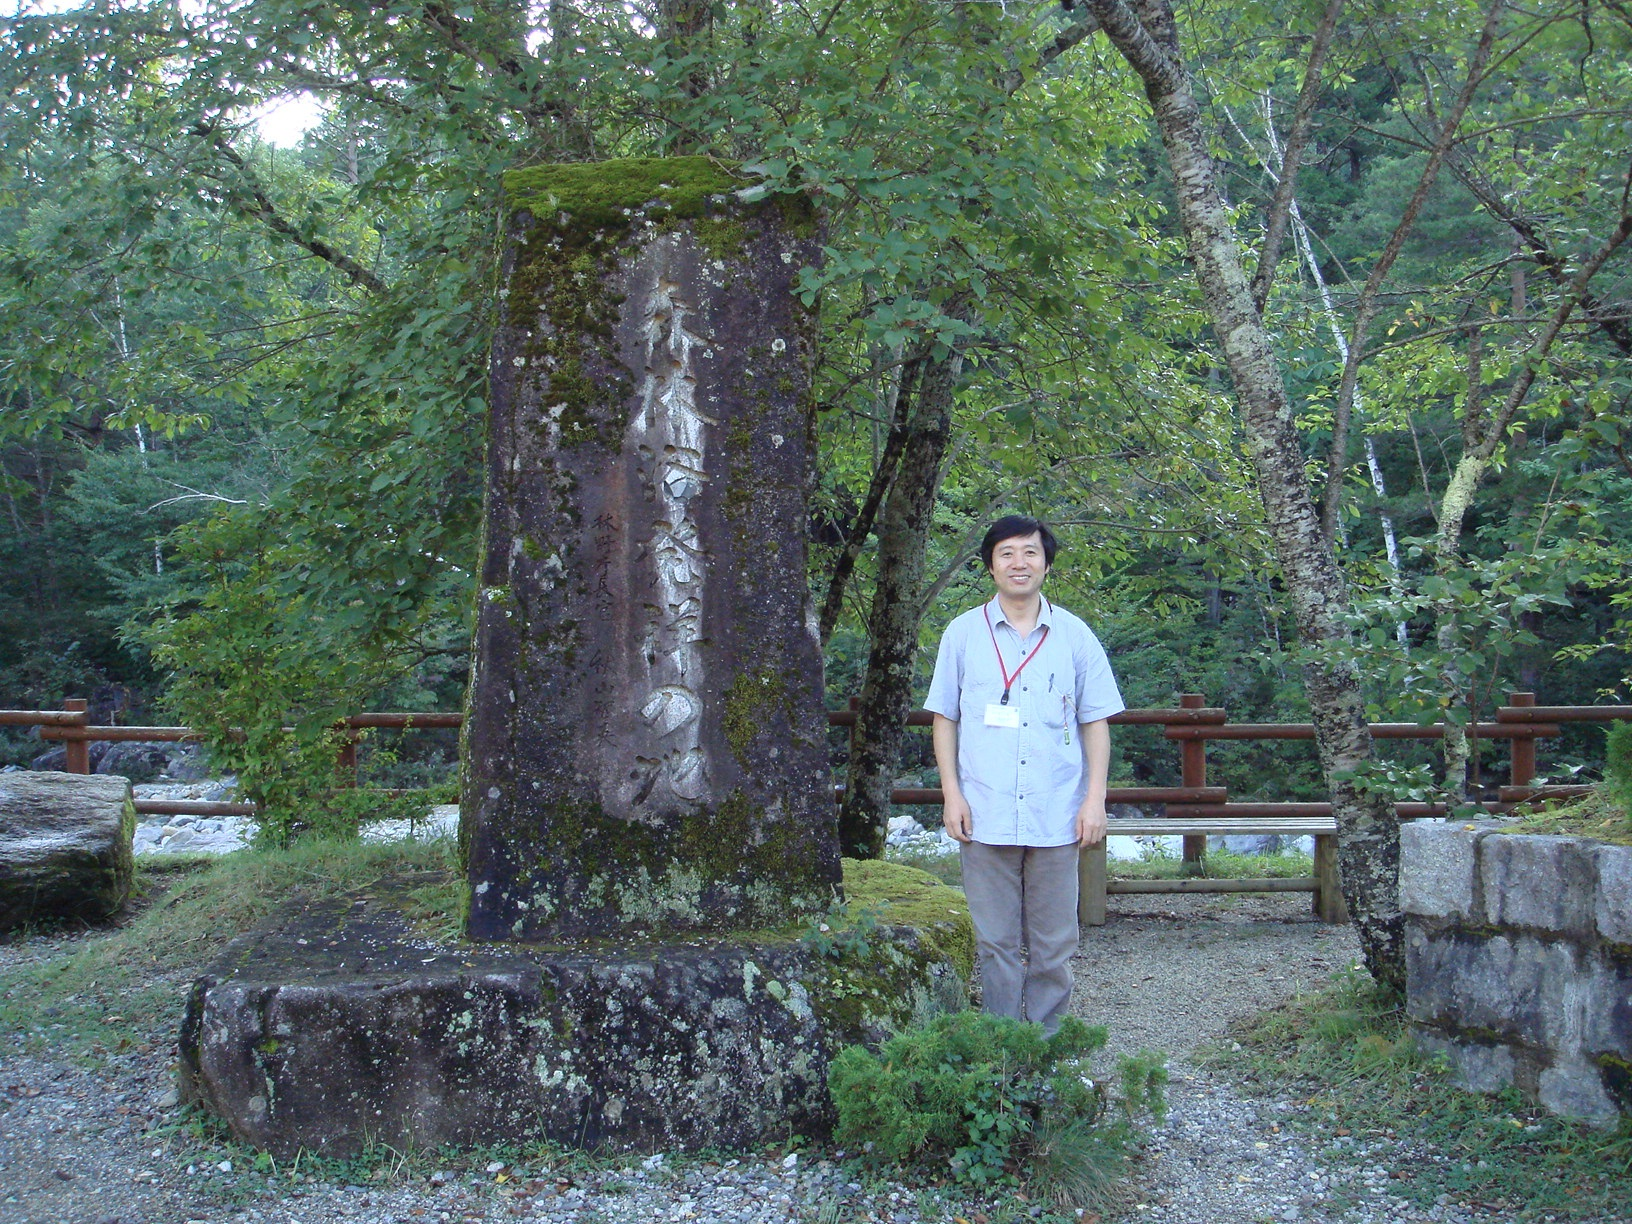 Meet Dr. Qing Li - The Man Who Wants You To Walk More In The Forests For Your Own Benefits